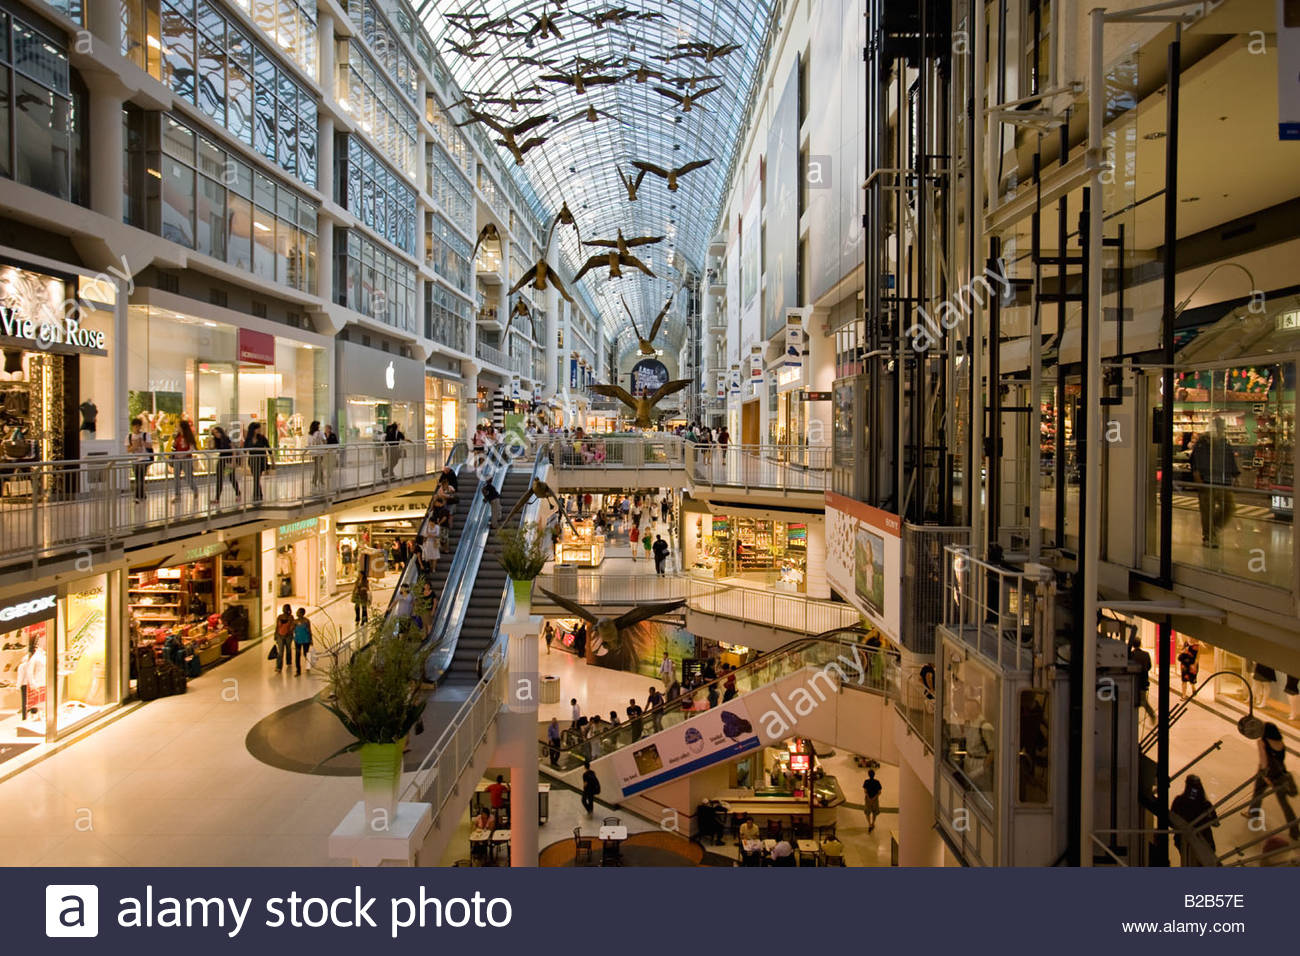 The Eaton Centre an upscale downtown multilevel enclosed shopping mall in Toronto Ontario Canada - Stock Image